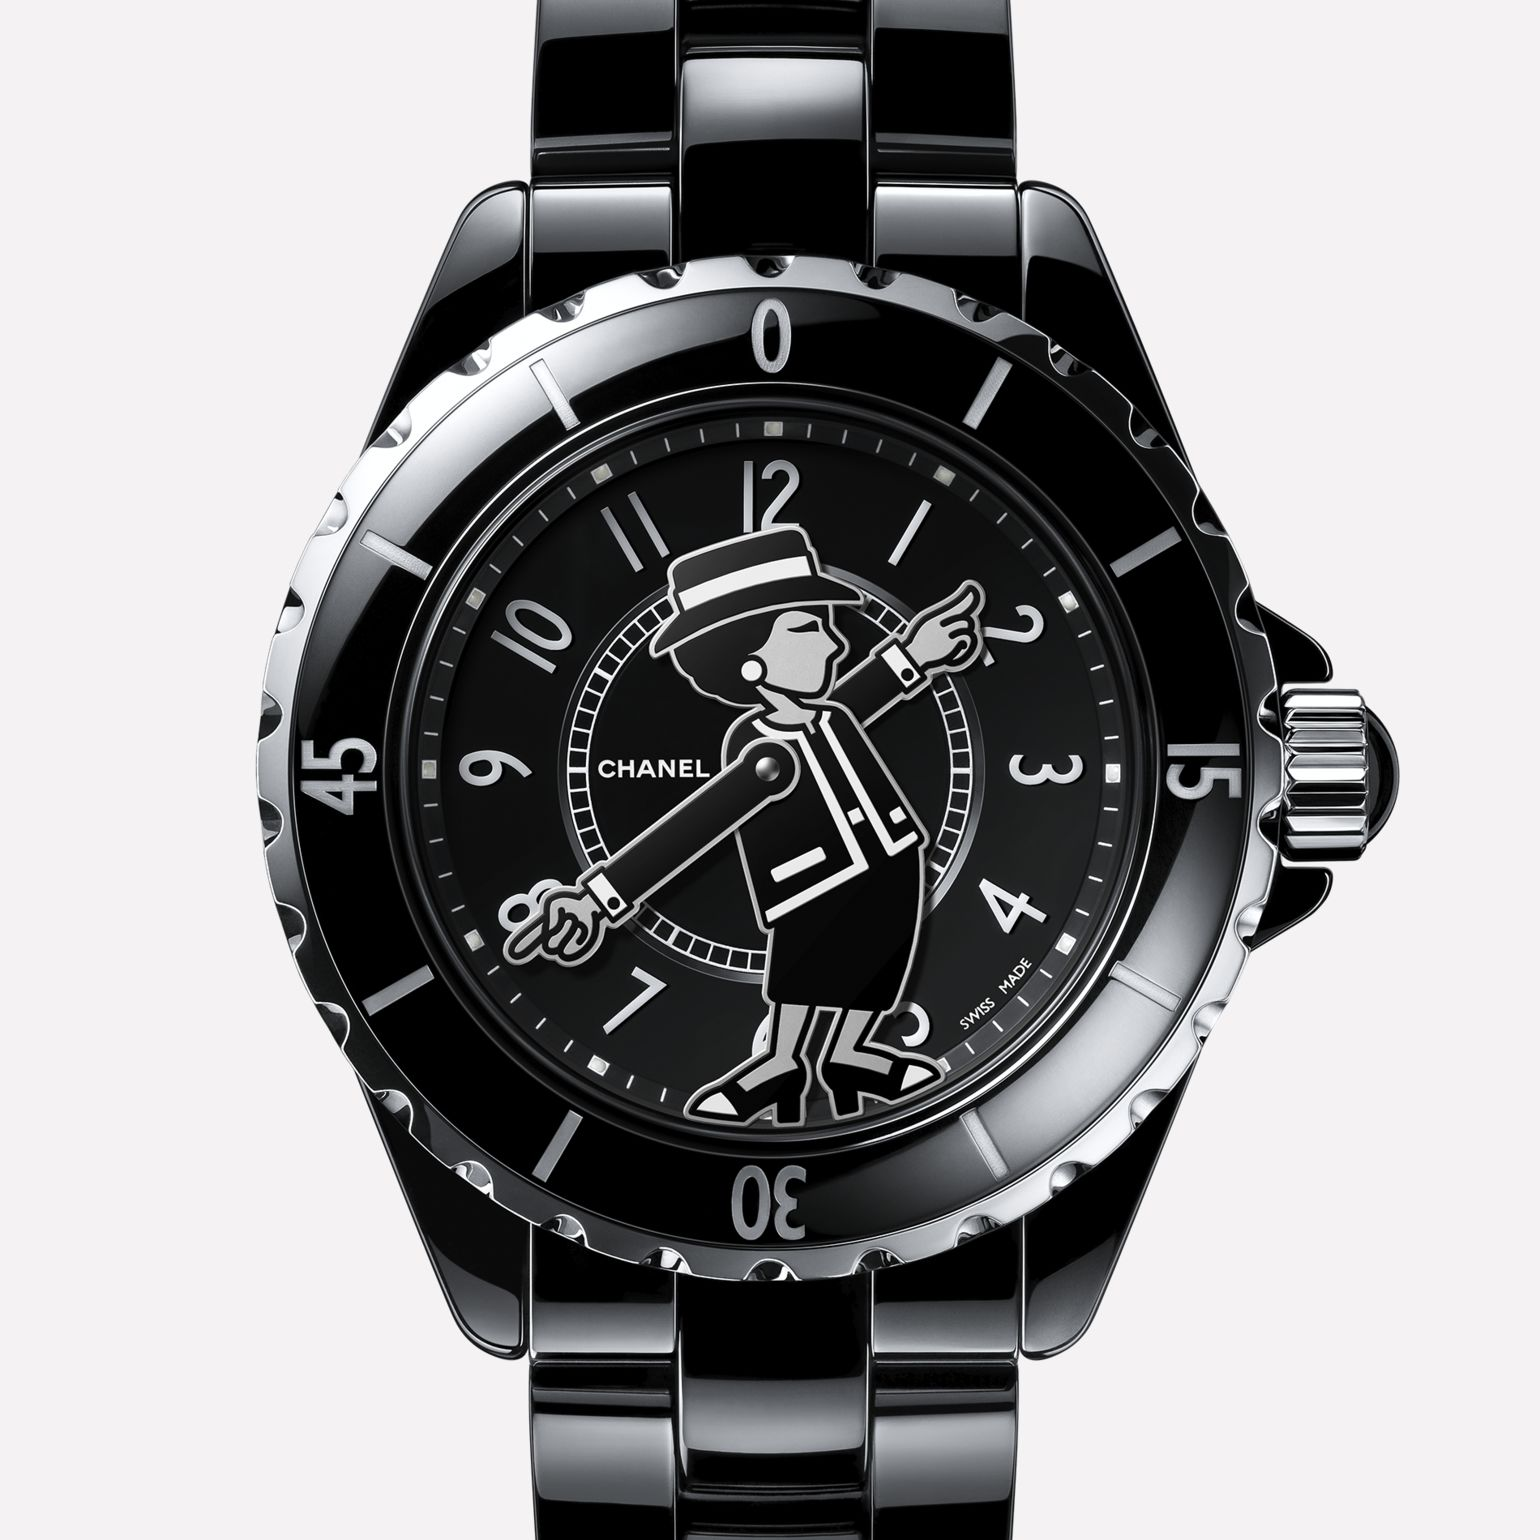 MADEMOISELLE J12 Black ceramic and steel, silhouette of Mademoiselle CHANEL